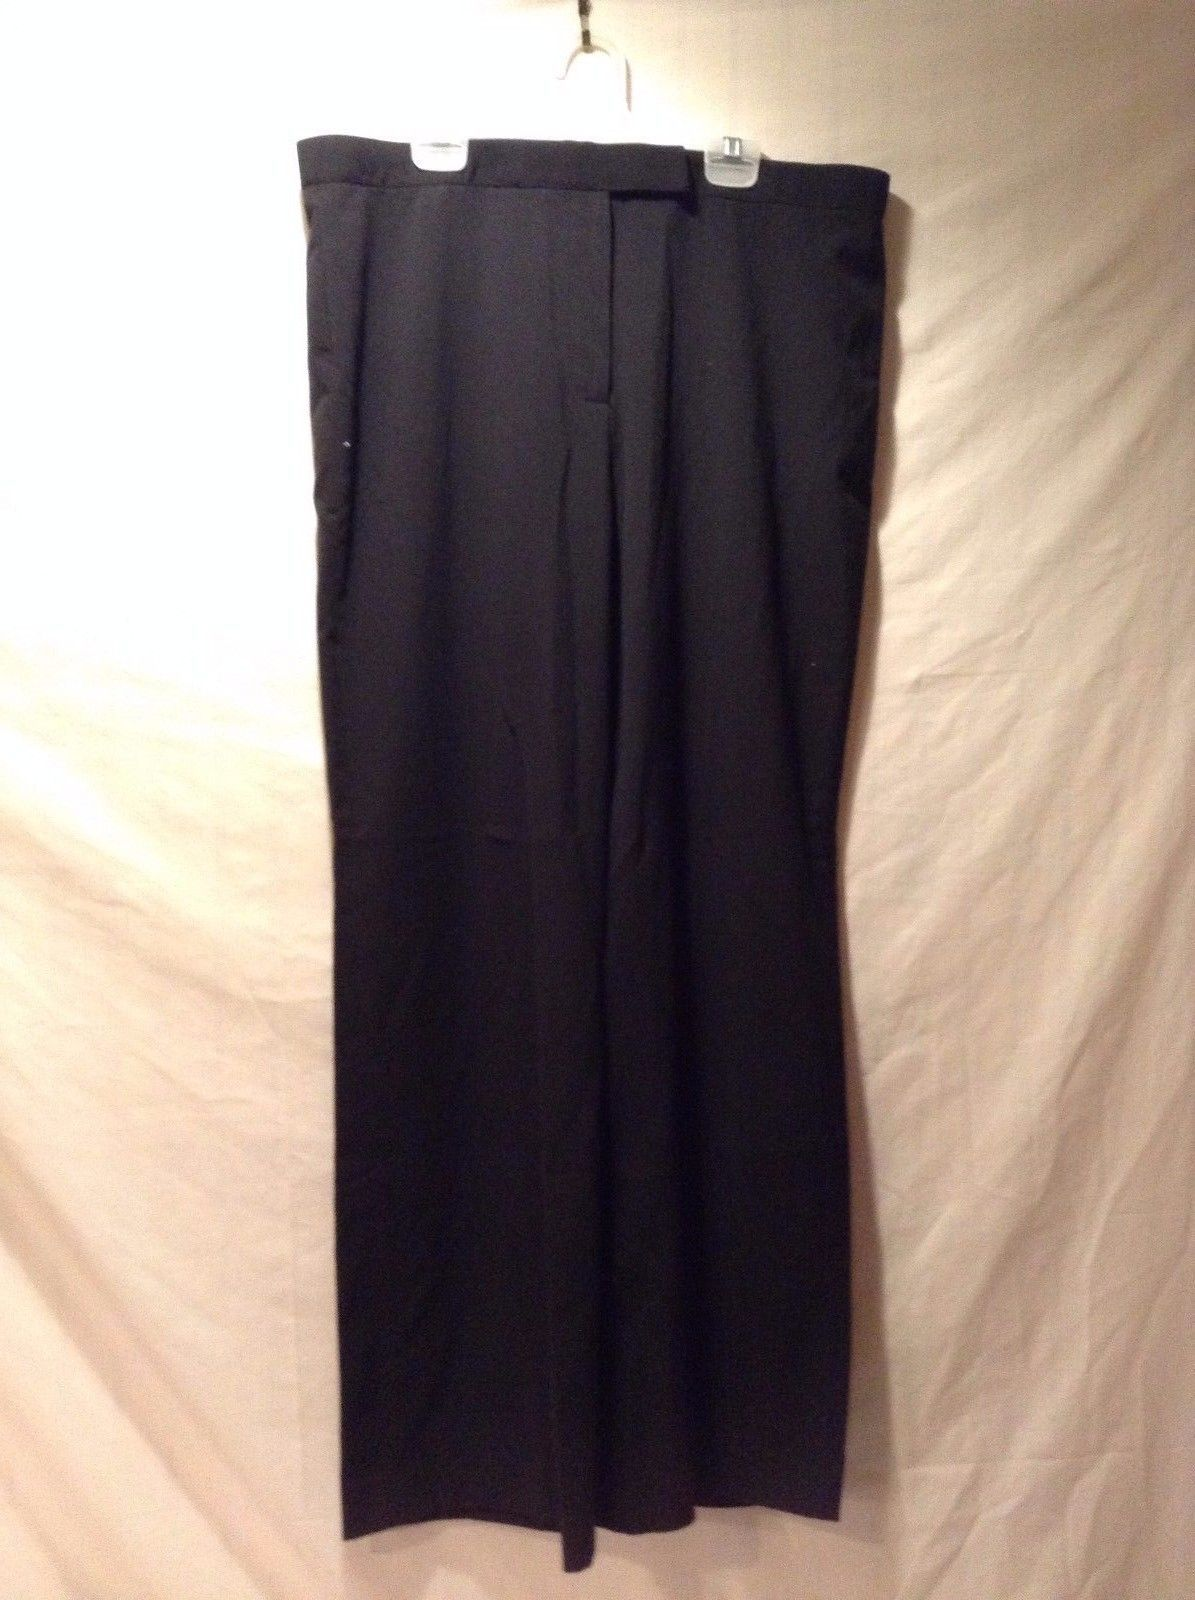 Women's Black Larry Levine Poly Blend Slacks Size 12 Great Used Condition